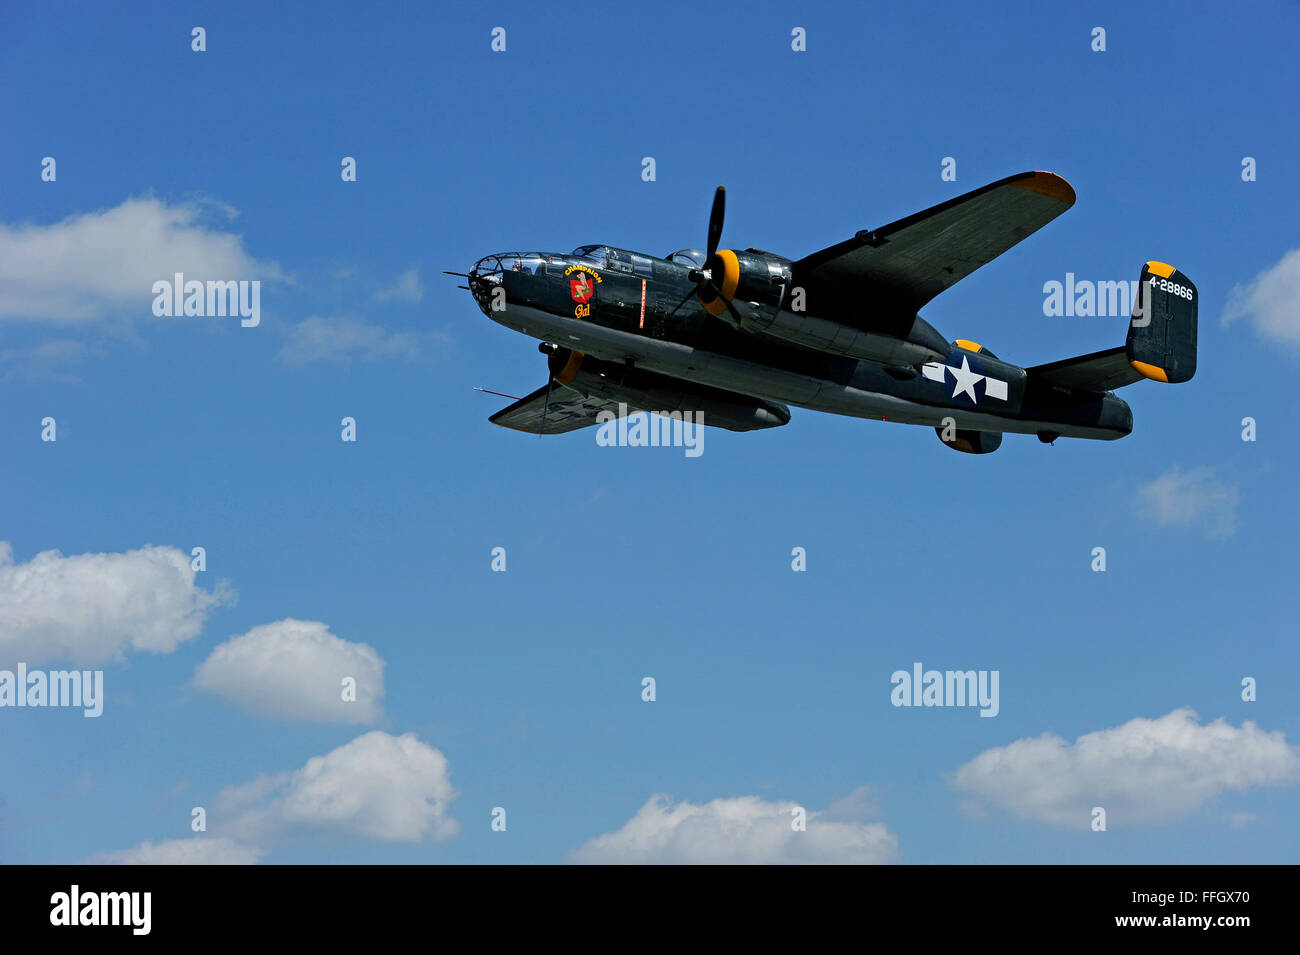 Champaign Aviation Museum's Champaign Gal B-25 Mitchell bomber flies over the Dayton, Ohio, area during a flyby - Stock Image